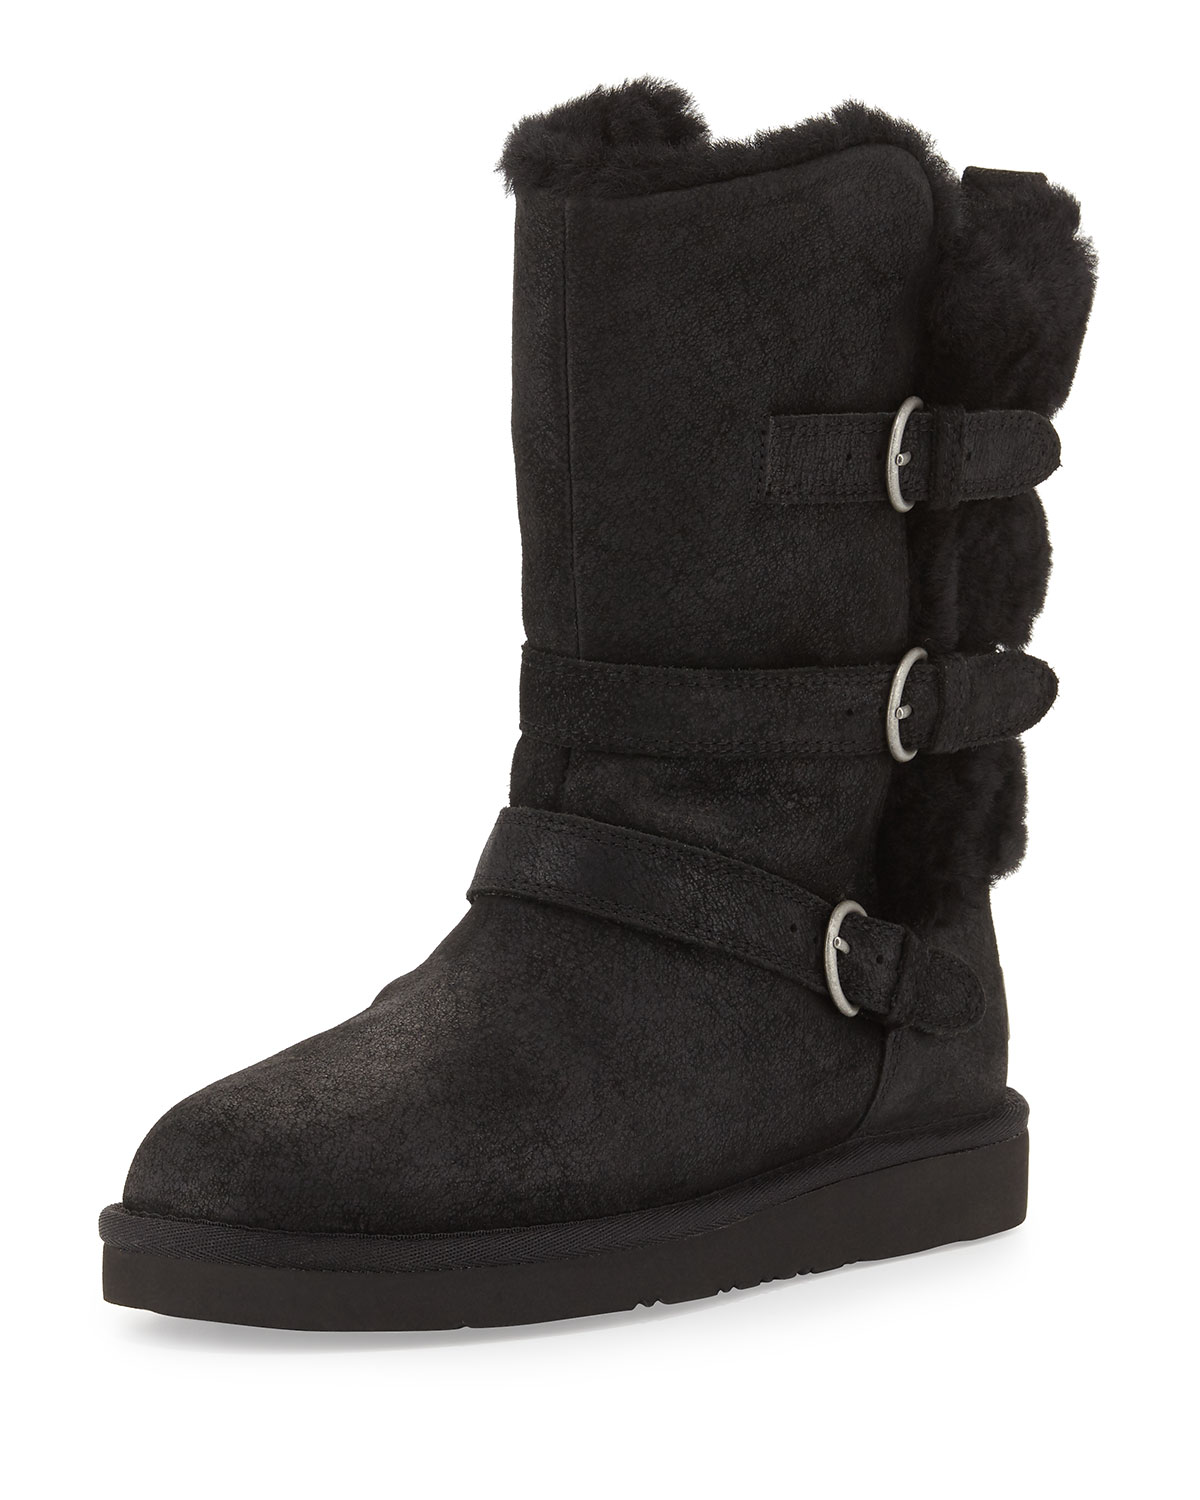 5865f2ae501 BECKET TRIPLE BUCKLE BOOT